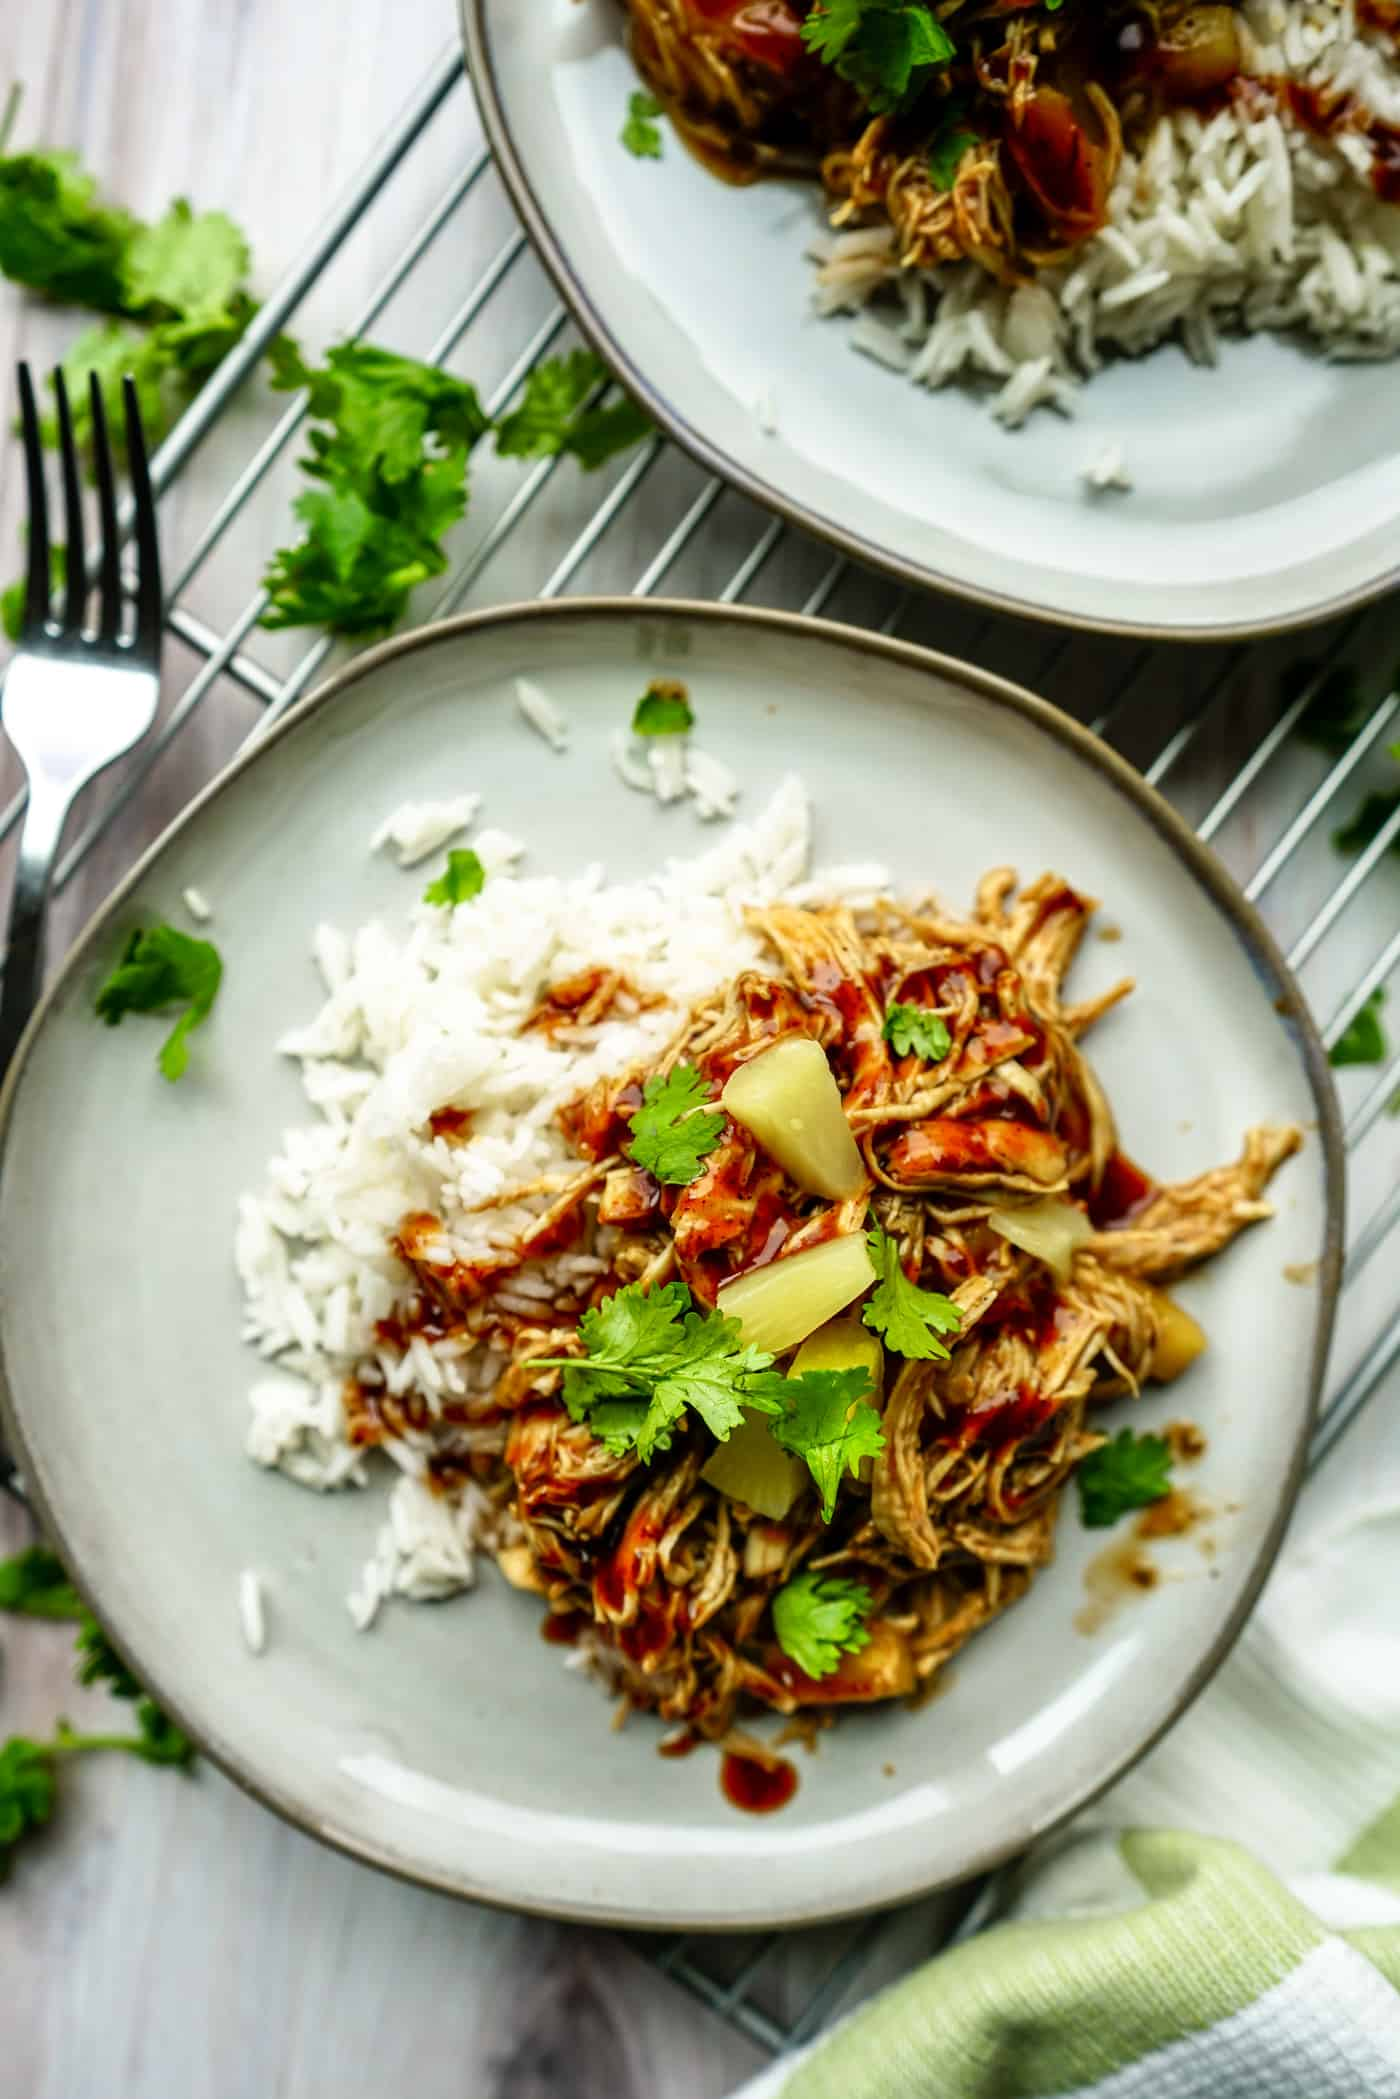 If you're looking for a quick, easy and delicious dinner for the whole family this Instant Pot Jerk Chicken is it! With less than 4 ingredients and 10 minutes, you'll have a lunch or dinner everyone will absolutely love!